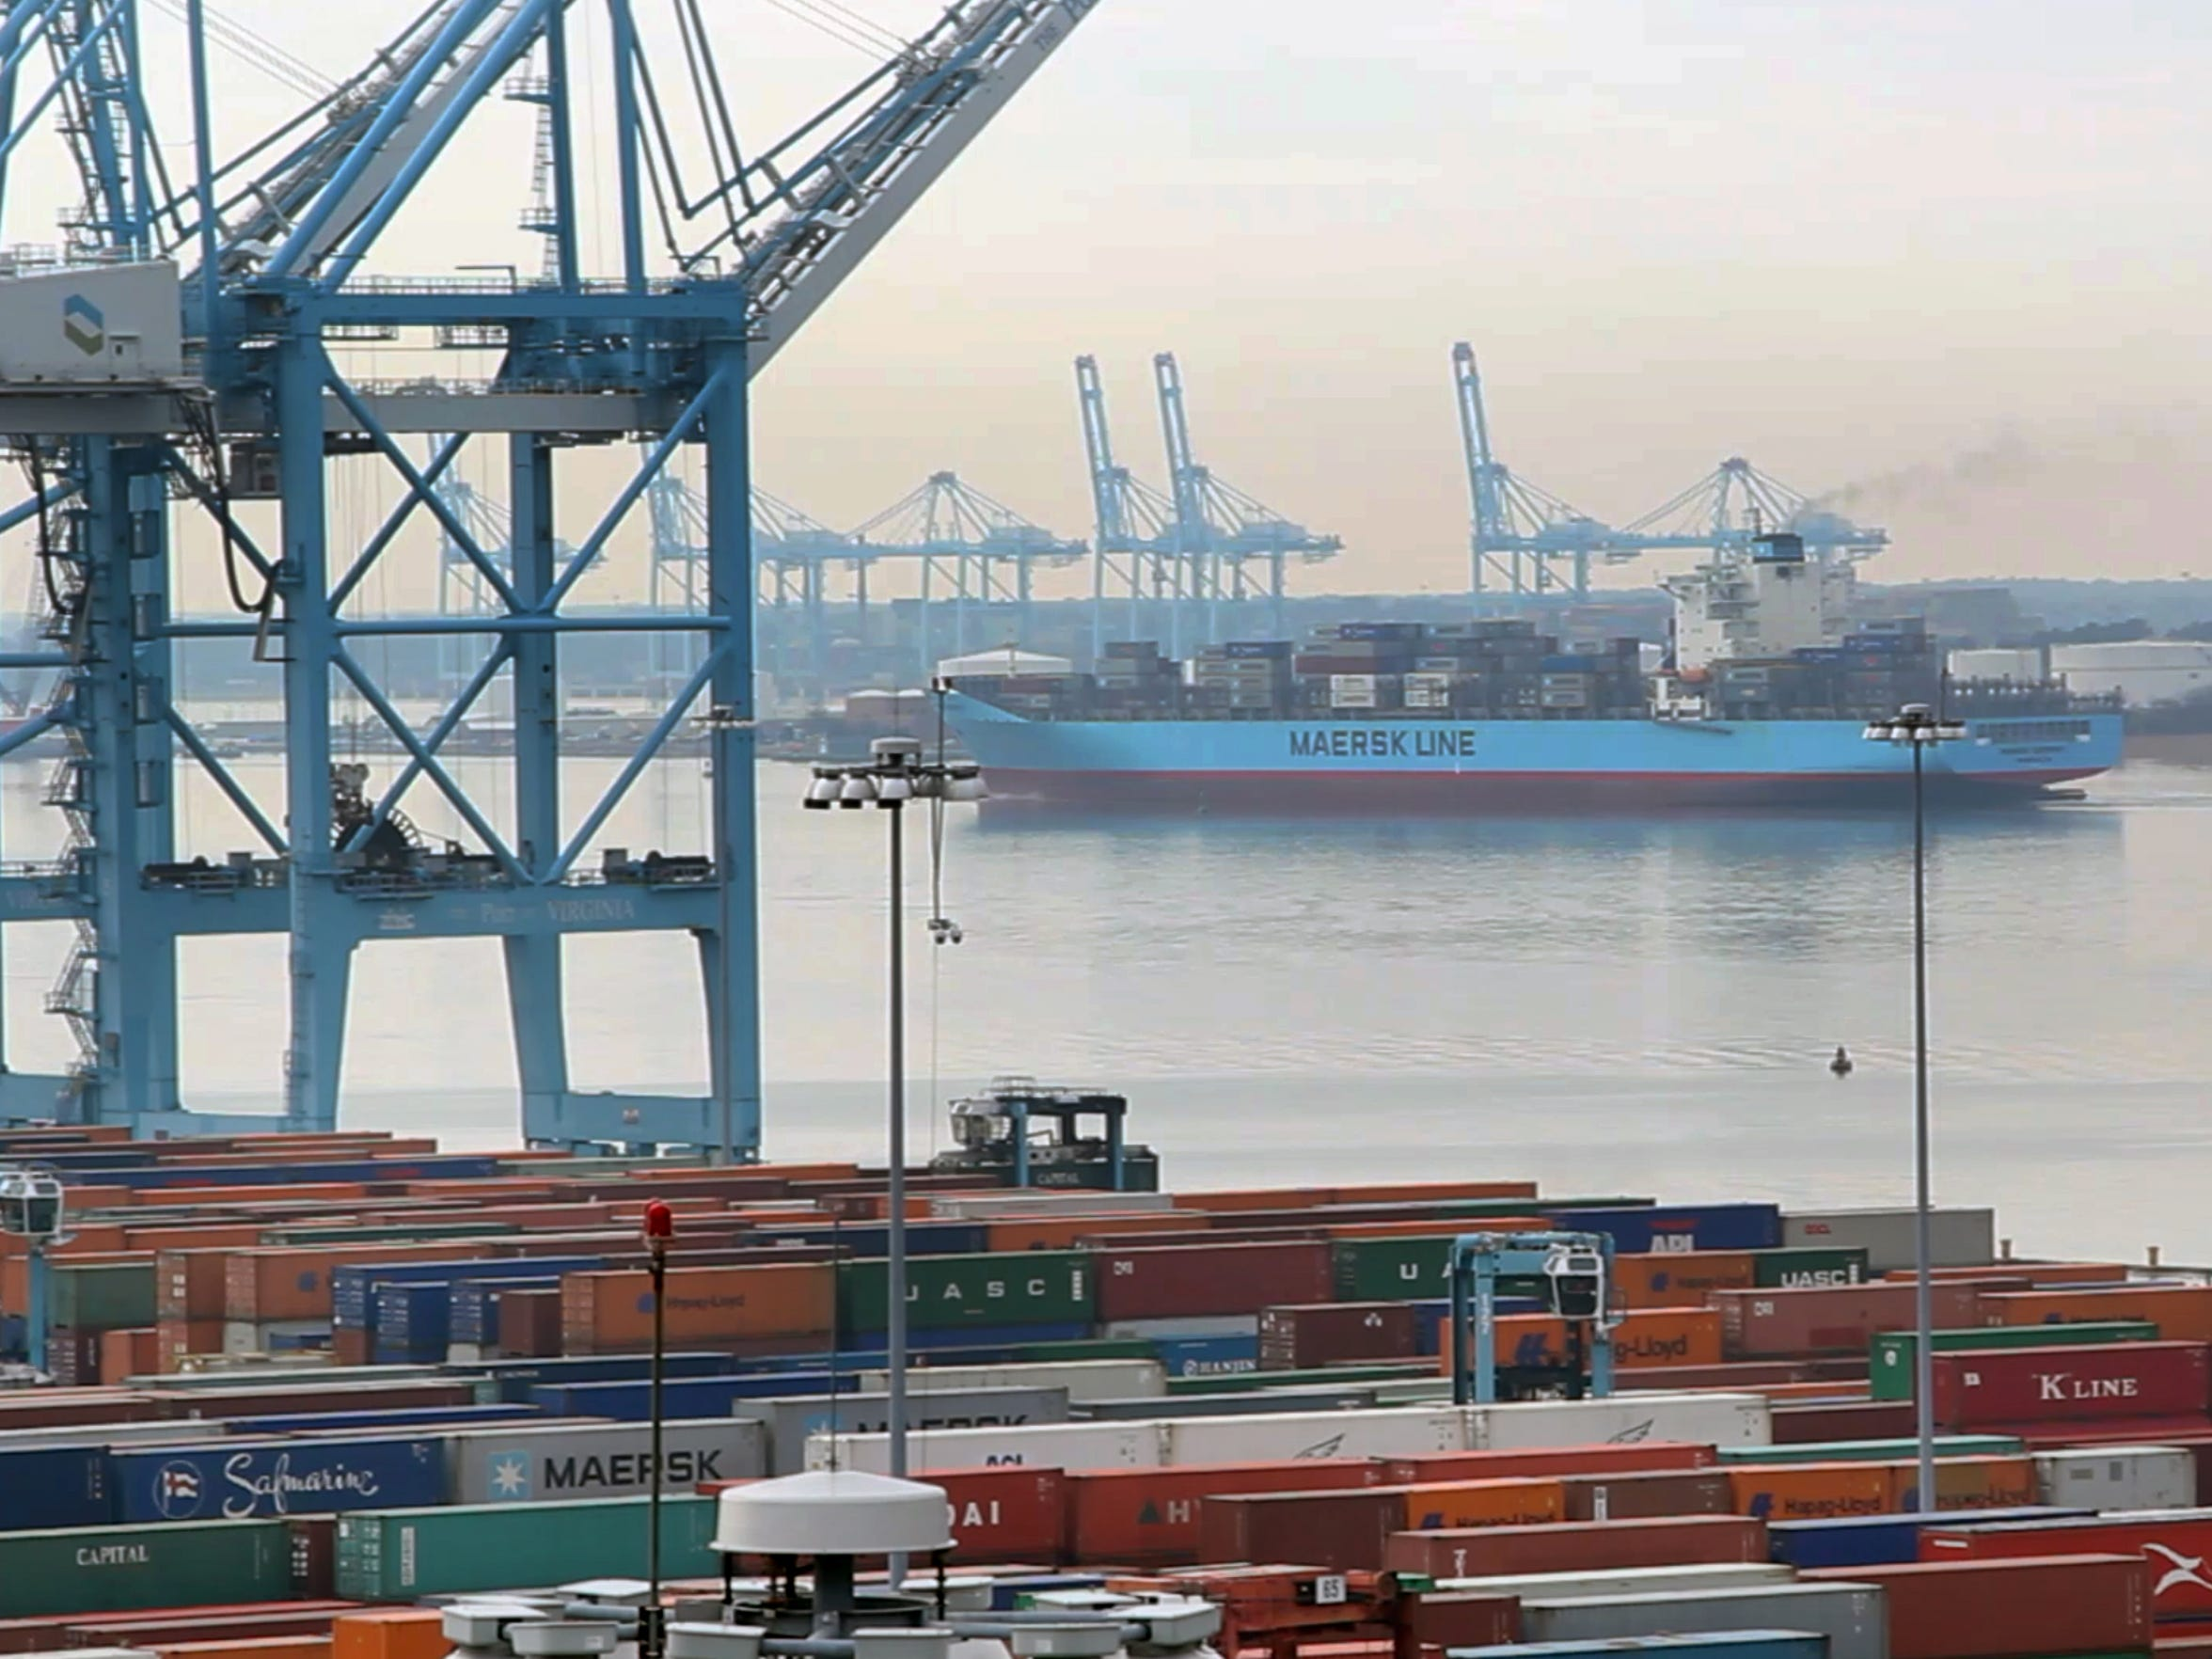 A Maersk Line ship leaves port in Norfolk, Va.